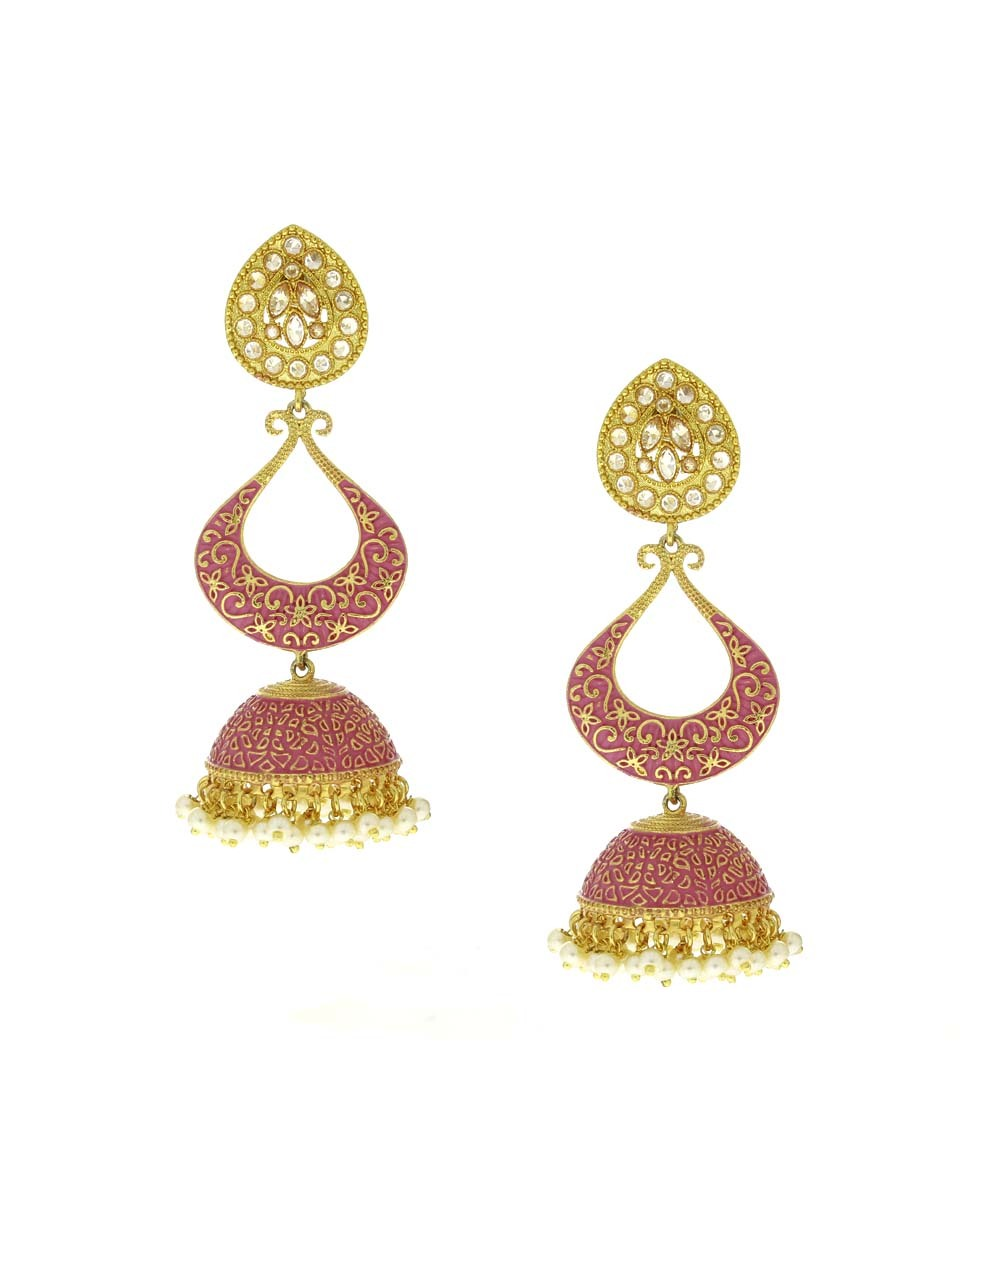 Pink Colour Golden Finish Traditional Earrings for Girls Stylish